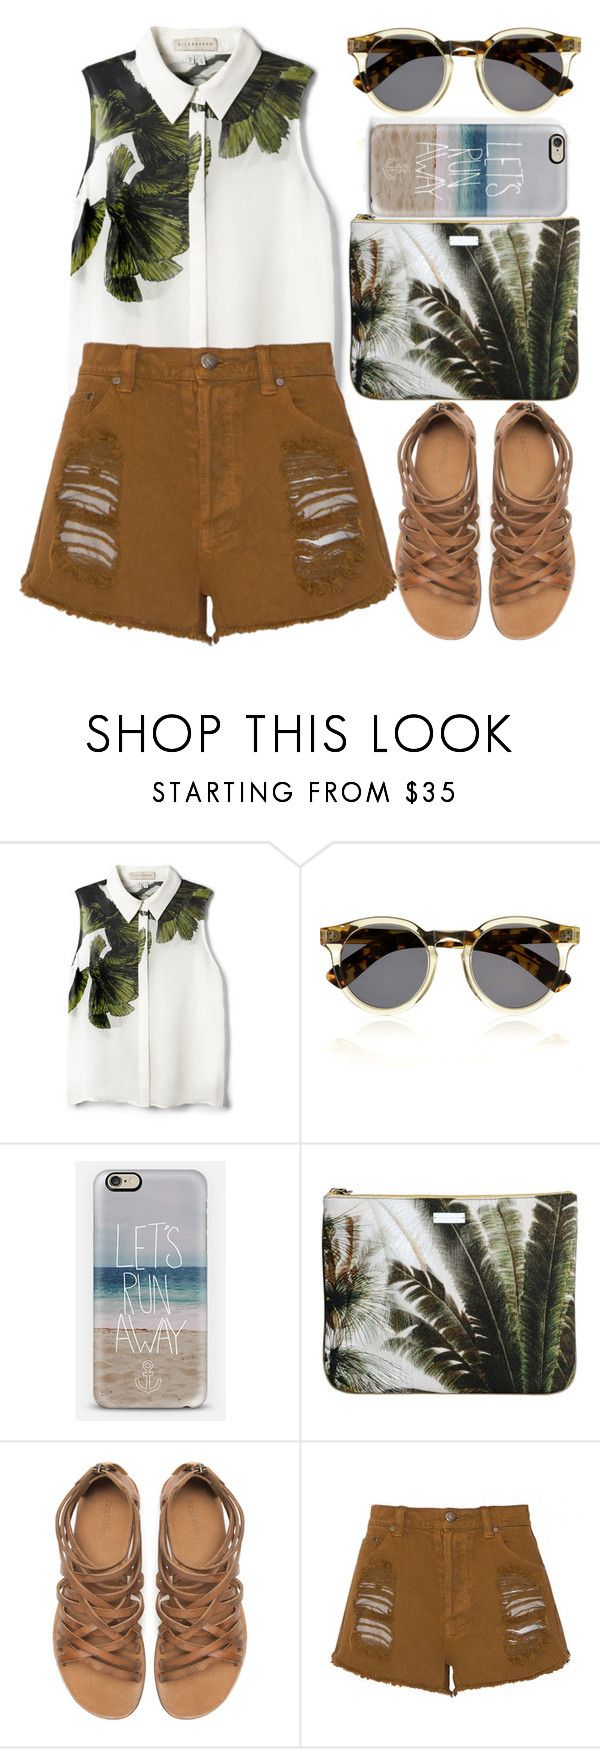 """""""QPLF"""" by krizan ❤ liked on Polyvore featuring Elle Sasson, Illesteva, Casetify, Mauro Grifoni, Zara and MINKPINK"""